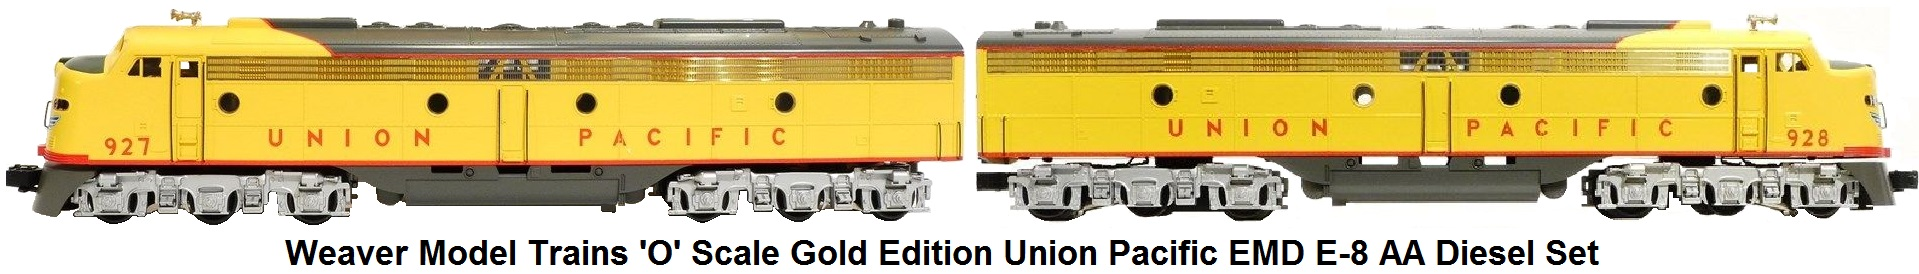 Weaver 'O' scale Gold Edition Union Pacific EMD E-8 AA Diesel Set